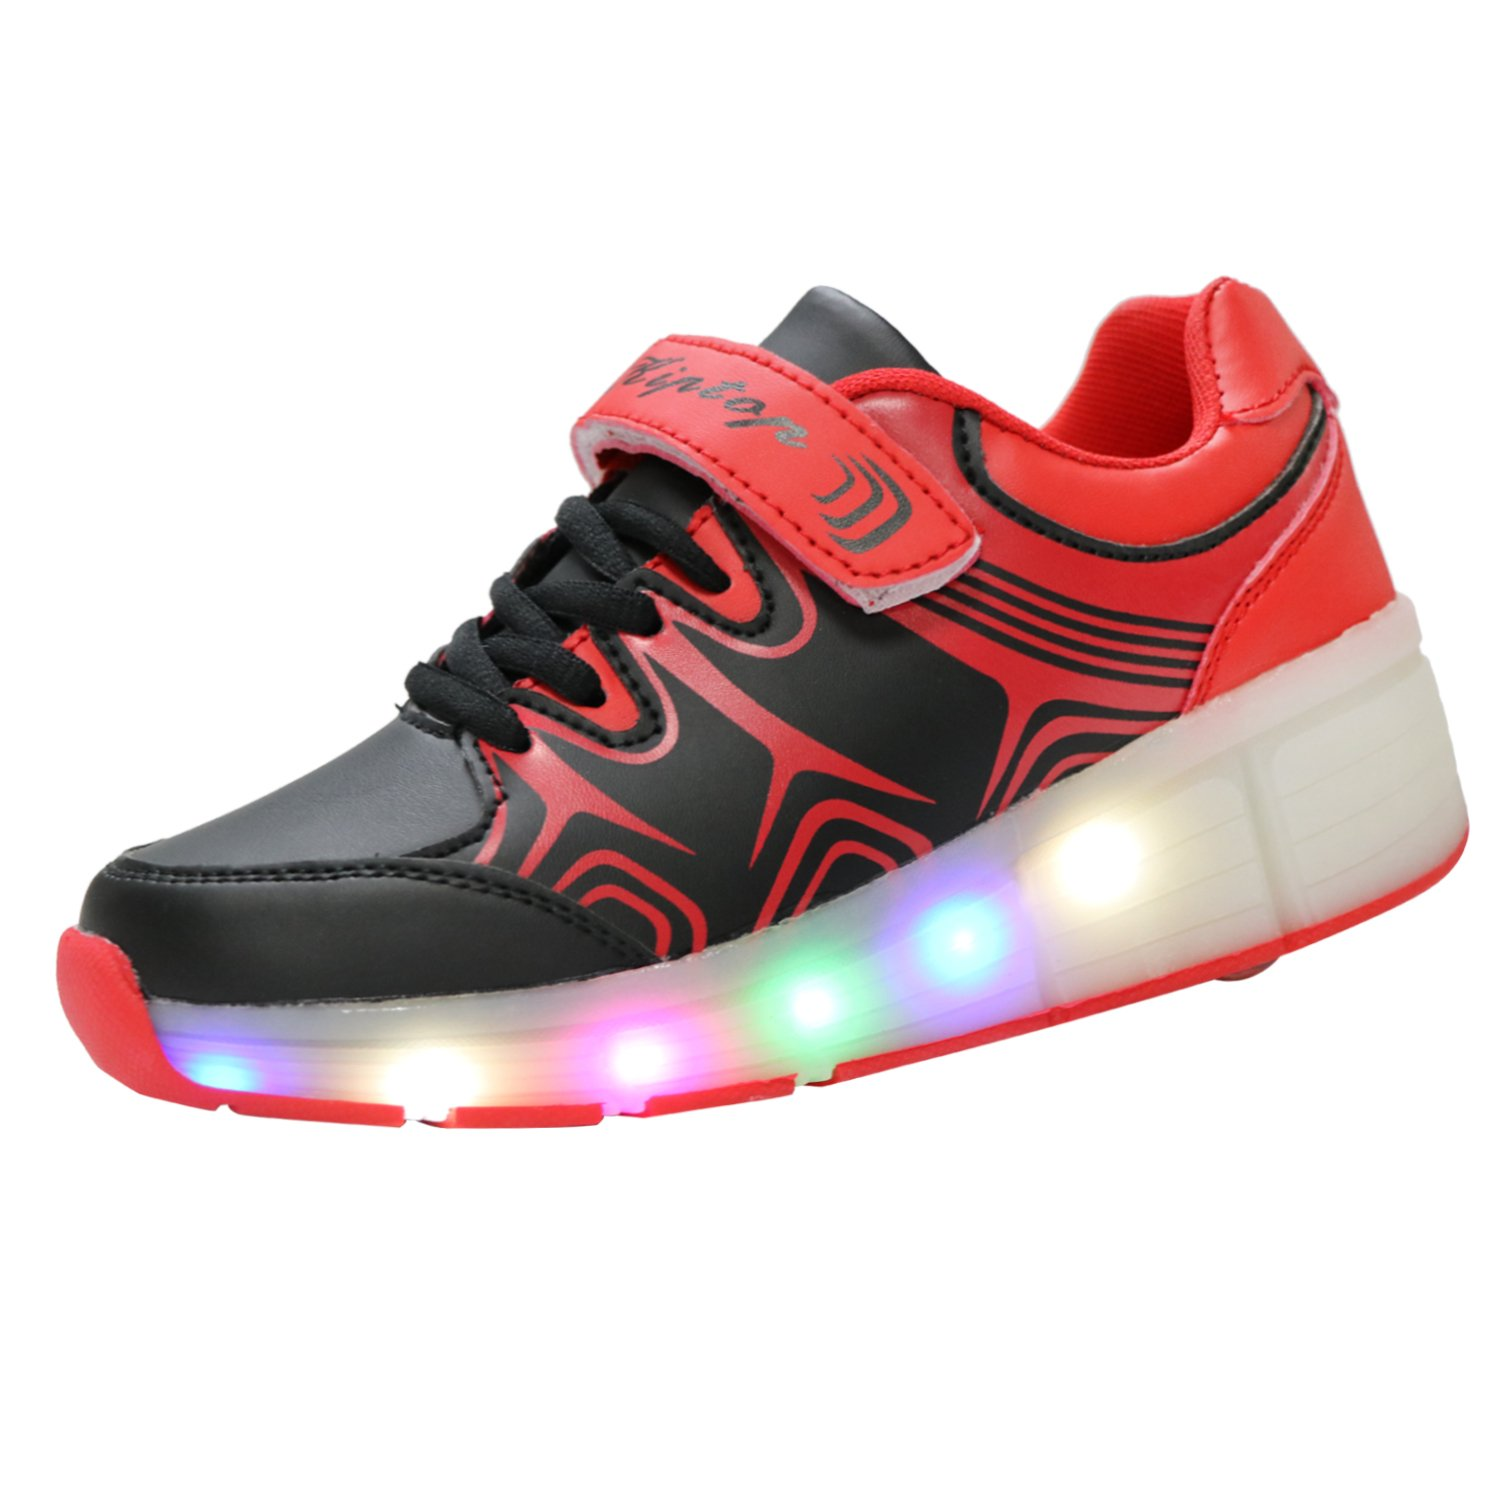 Buy roller shoes online australia - Kiptop Kids Led Flashing Lights Sneakers Roller Shoes Trainers For Boys Girls Without Usb